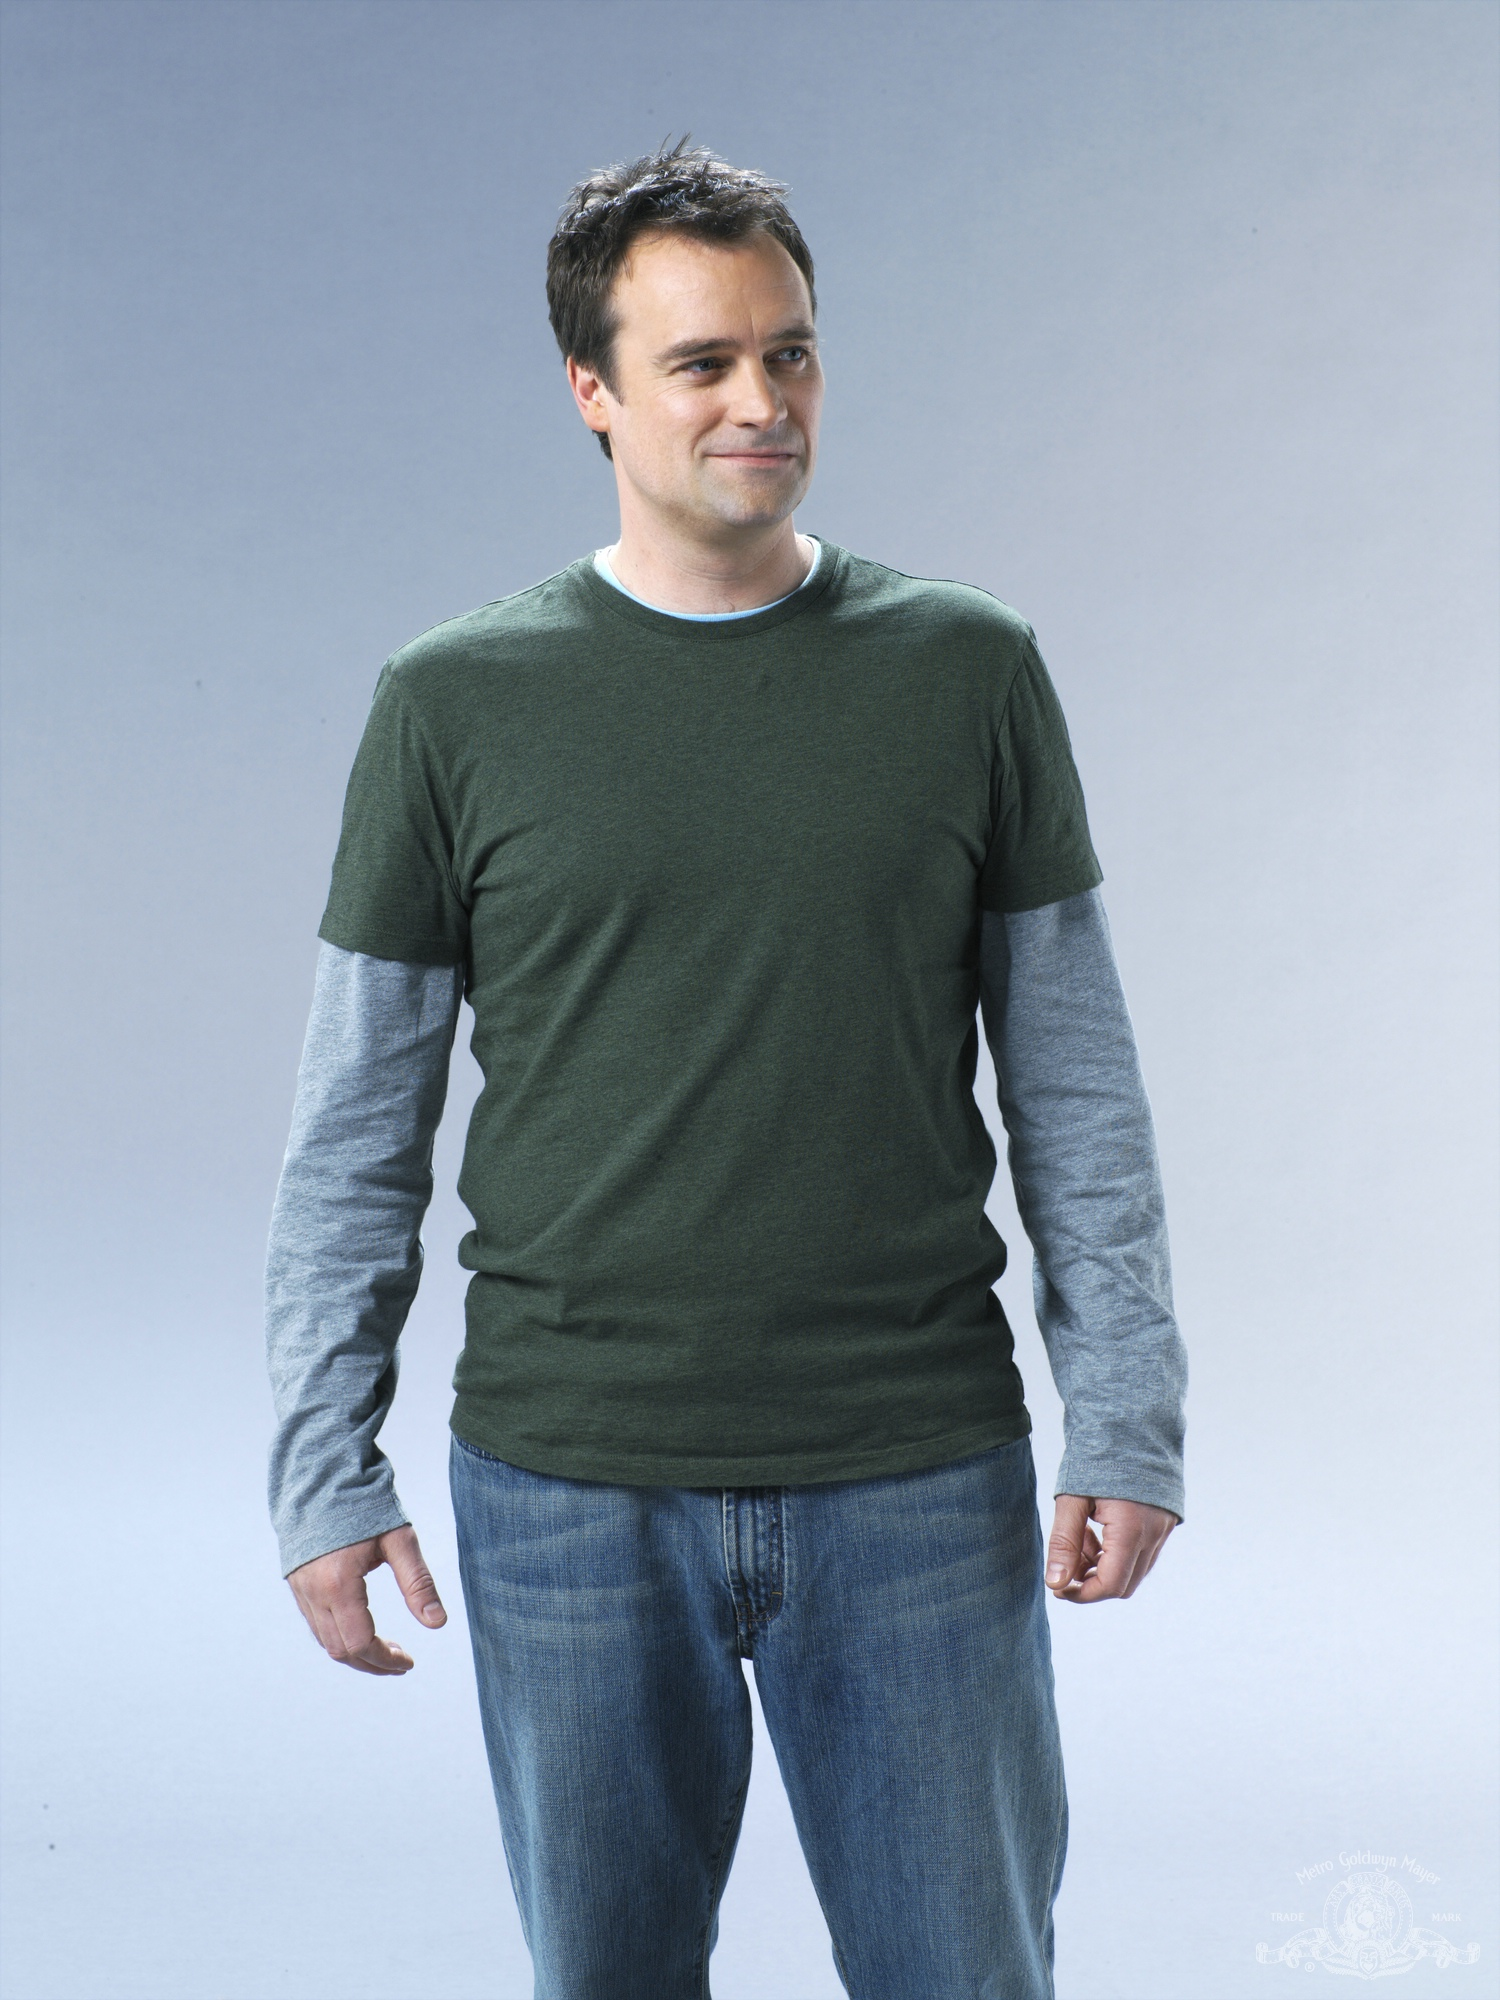 David Hewlett 2013 Stargate Atlant...